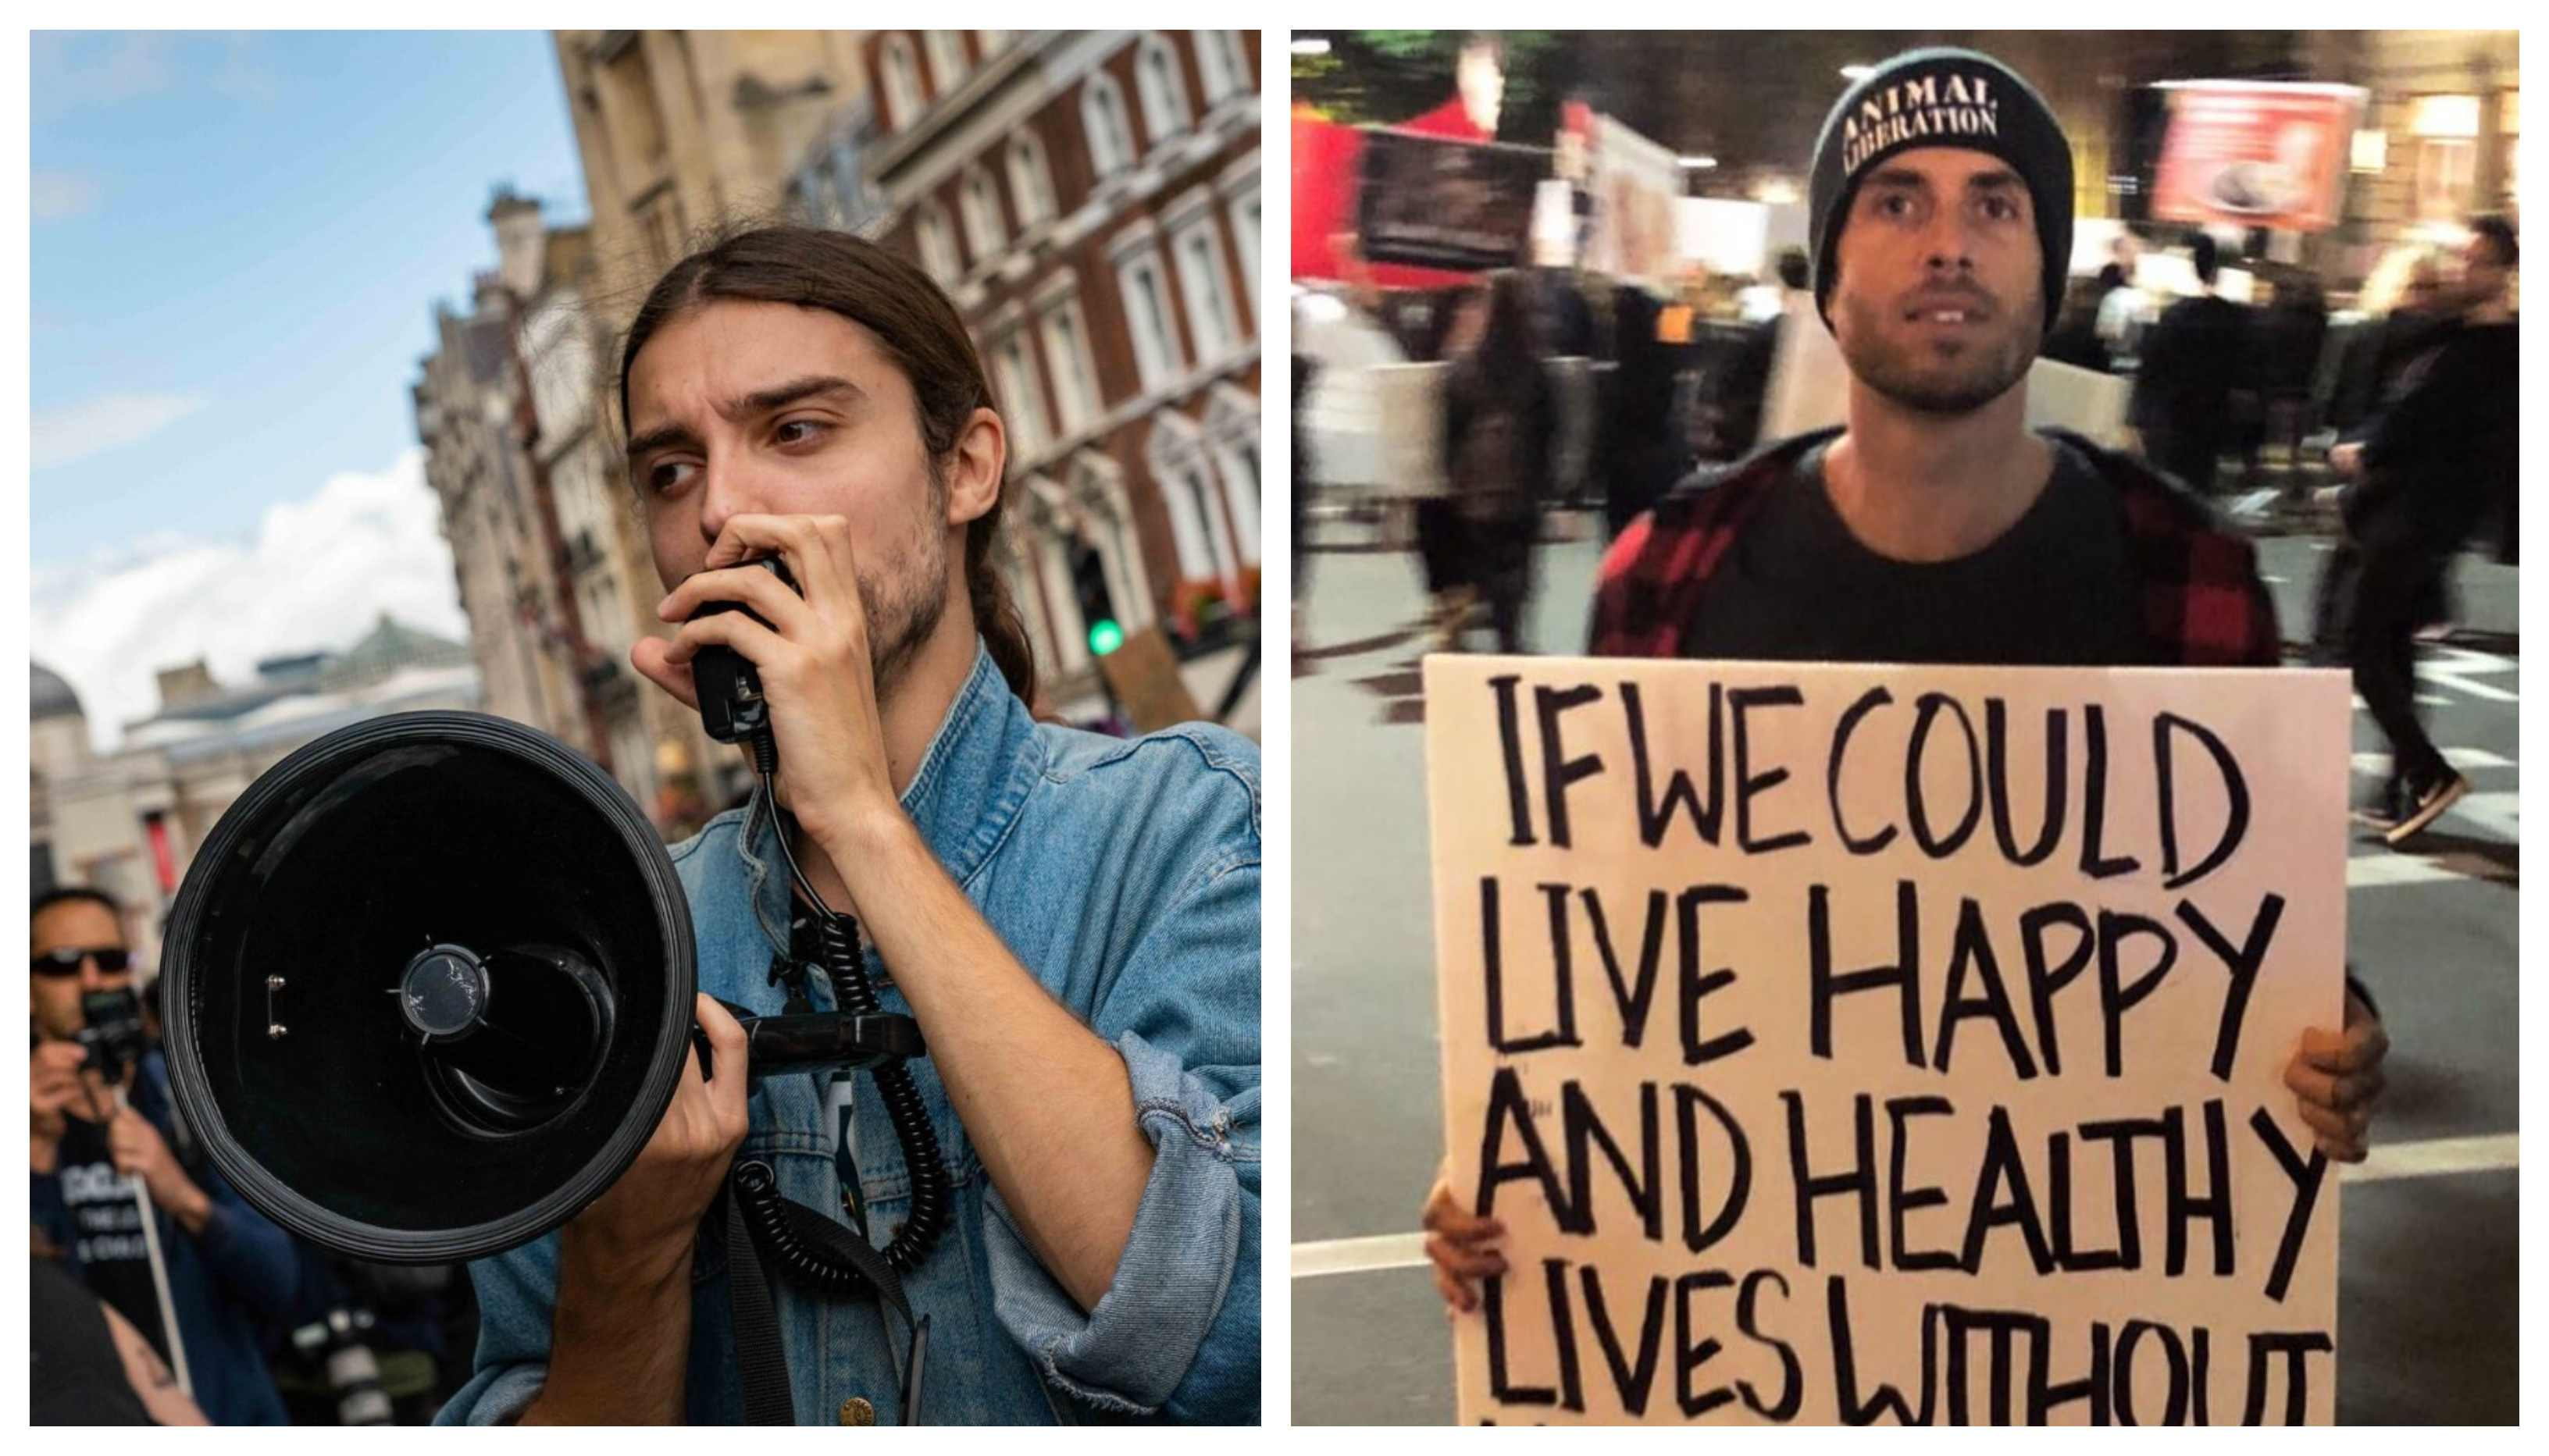 Vegan activists Earthling Ed and James Aspey